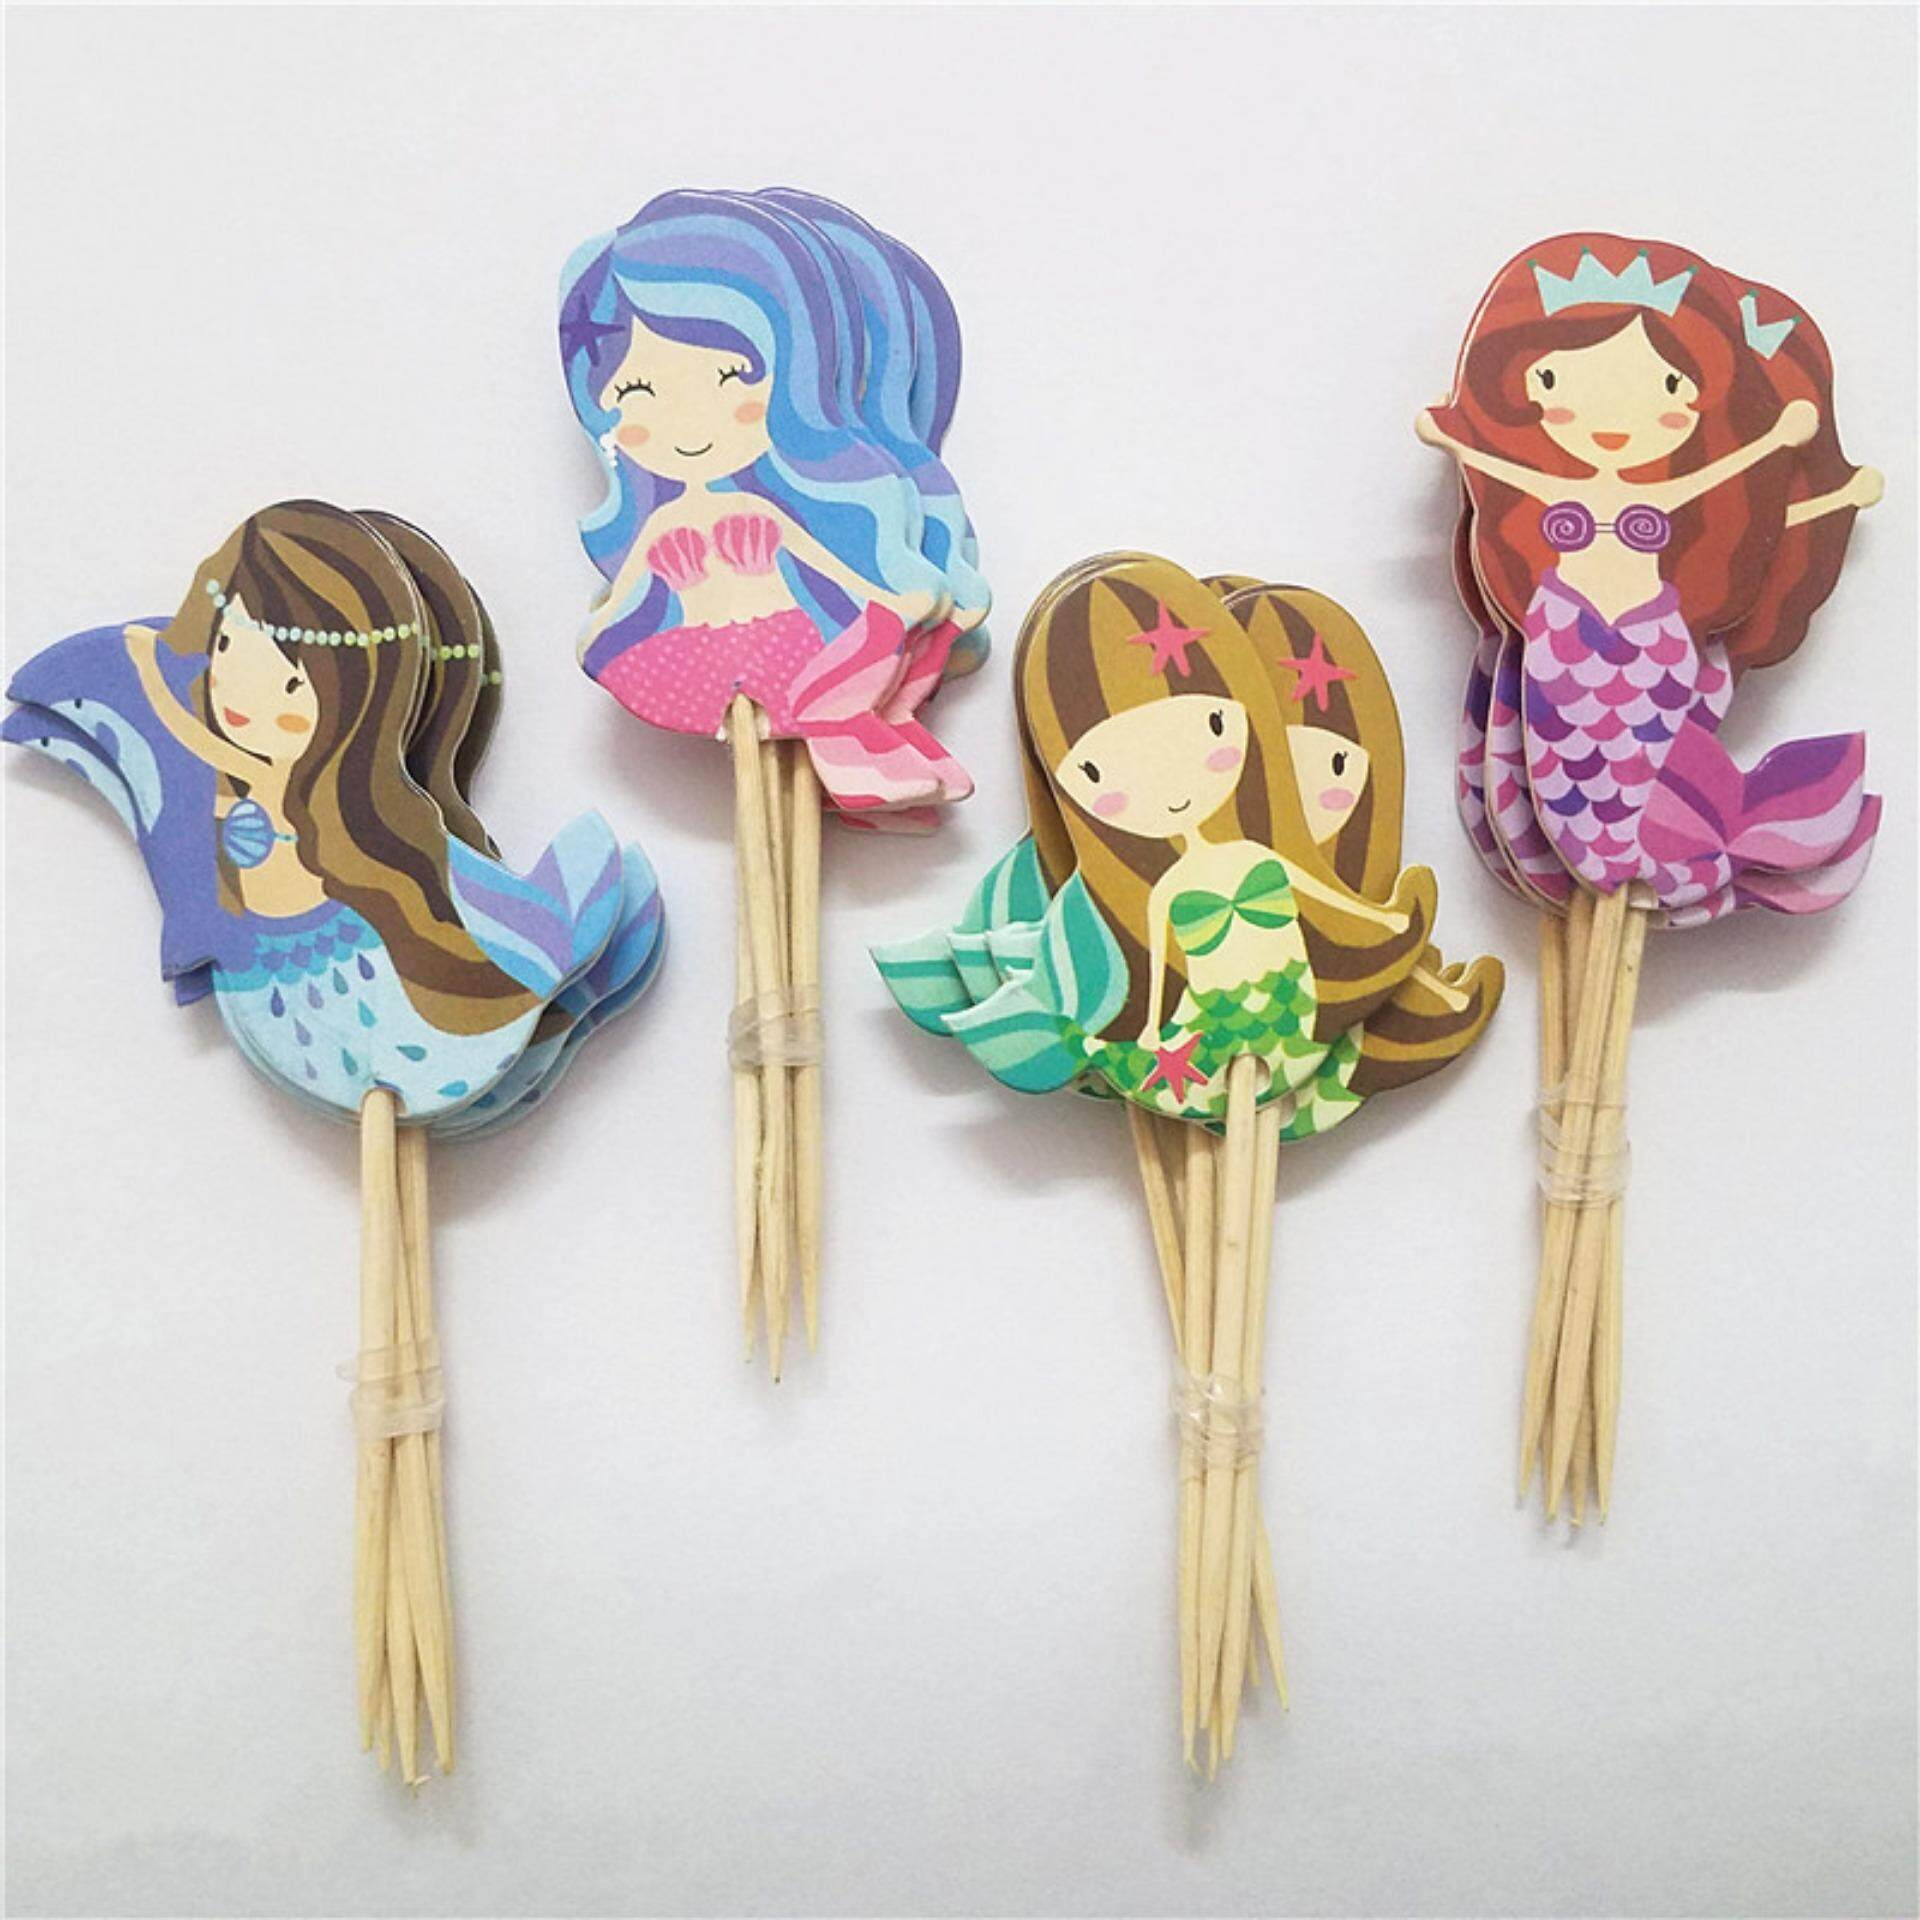 24pcs Cartoon Mermaid Cupcake Topper Picks Kid Birthday Party Decoration By Colorful Heart.